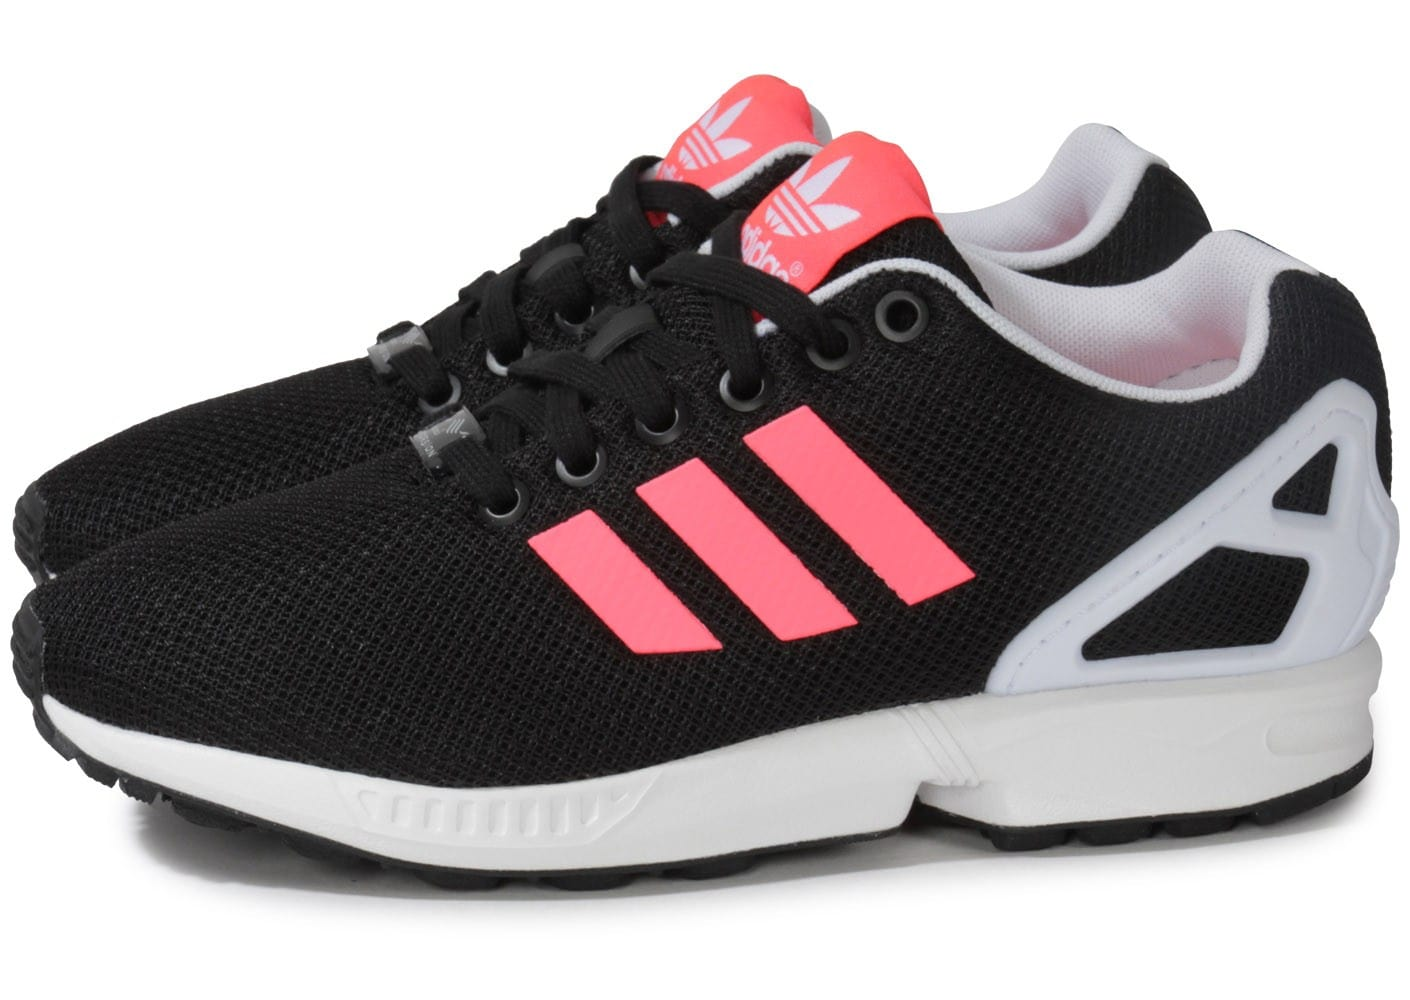 authorized site brand new lowest price adidas Zx Flux Noir Rose - Chaussures adidas - Chausport